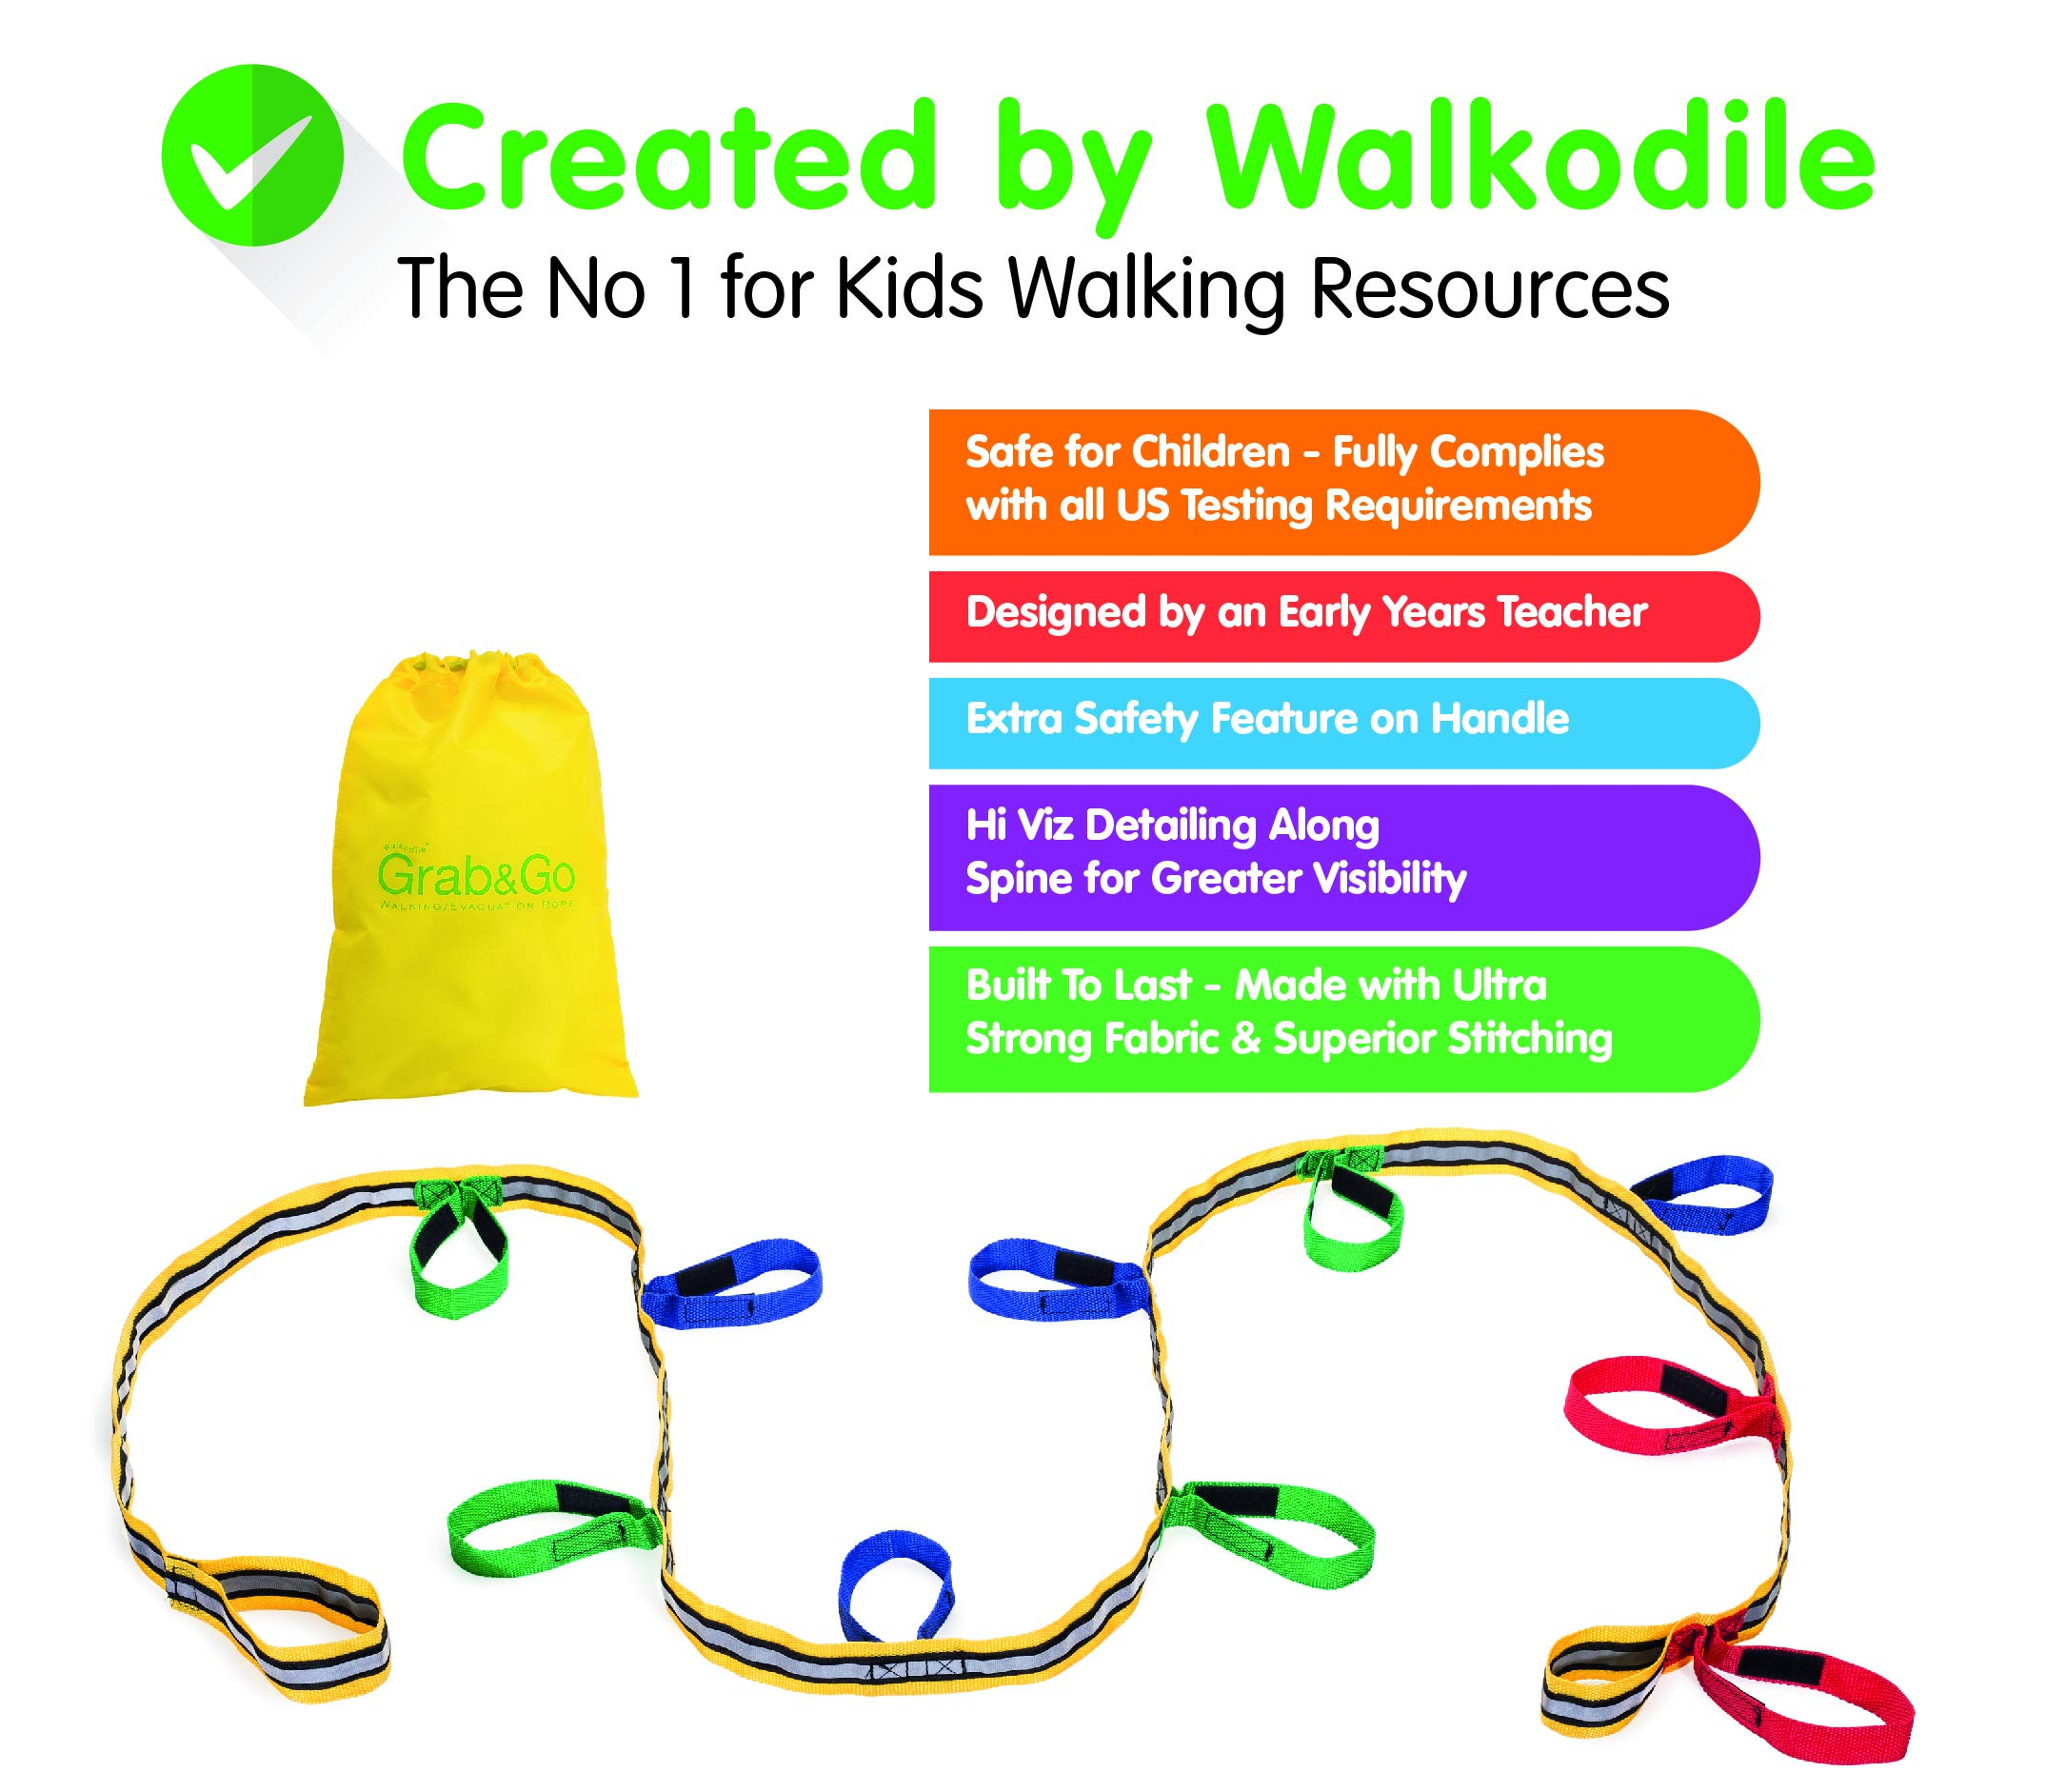 Kids Walking Rope (10 Child). Teacher Designed, Premium Quality. Extra Safety Feature on Handles. Hi Viz Detail. Includes Free Learning Games for Walks Guide